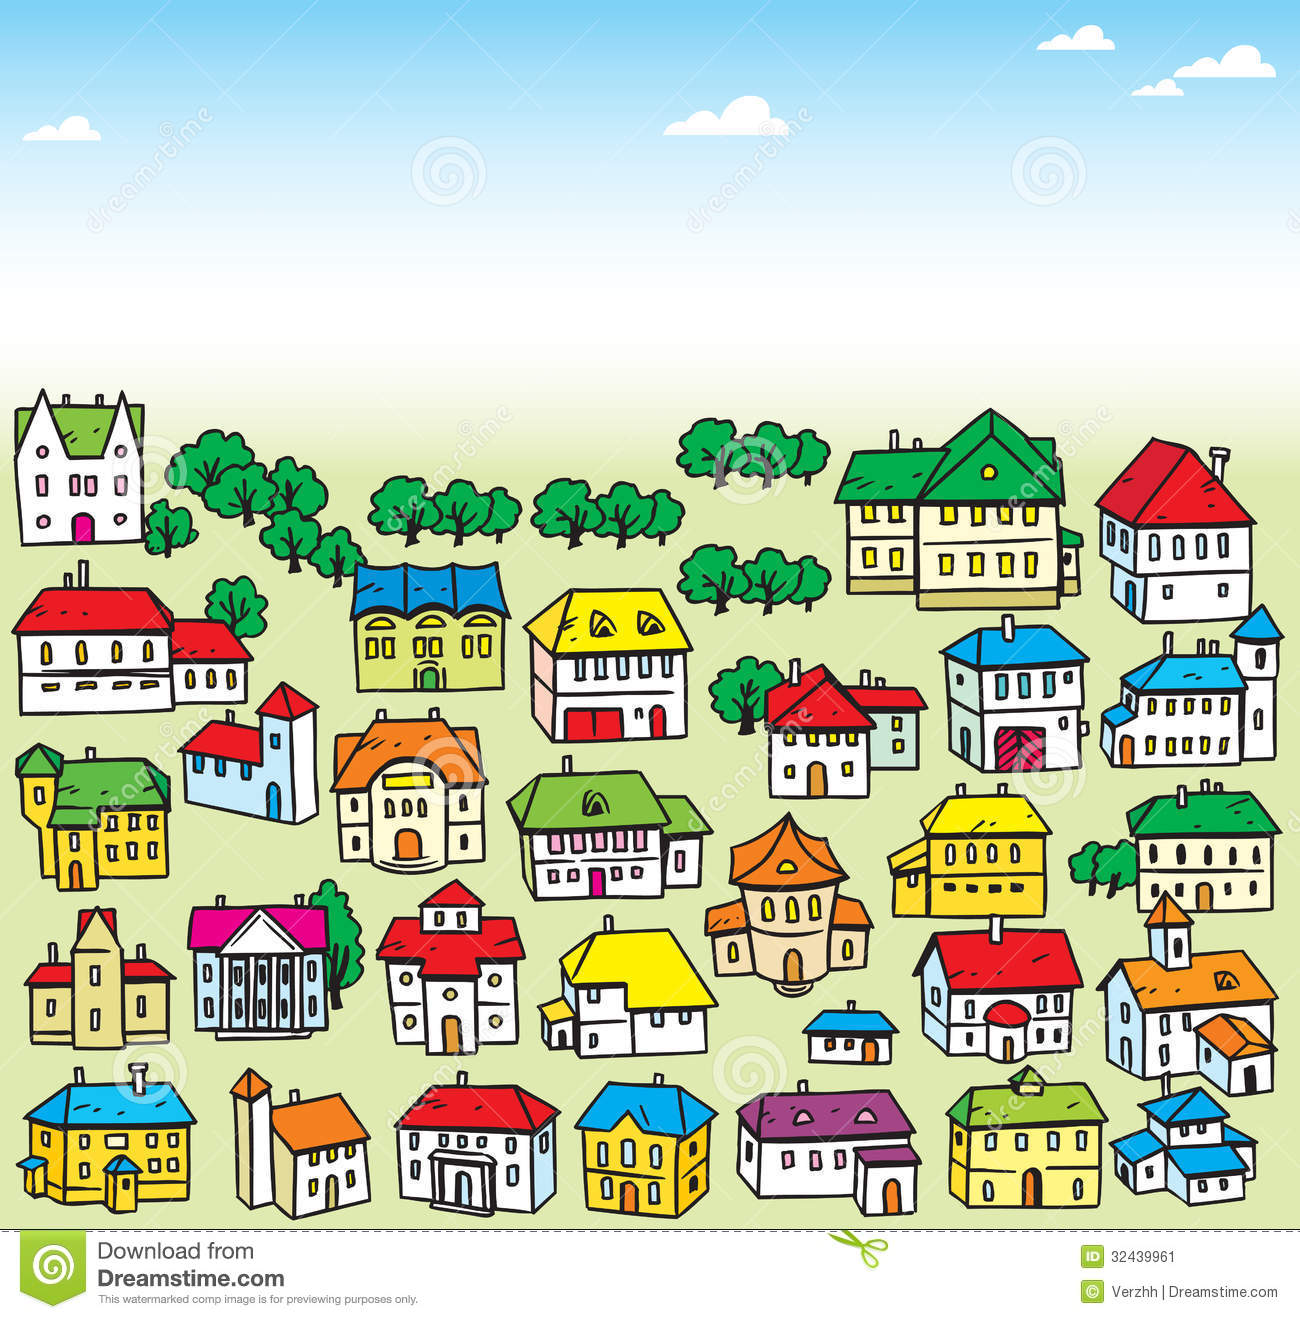 Lot Of Houses Stock Vector. Illustration Of Symbol, Suburb